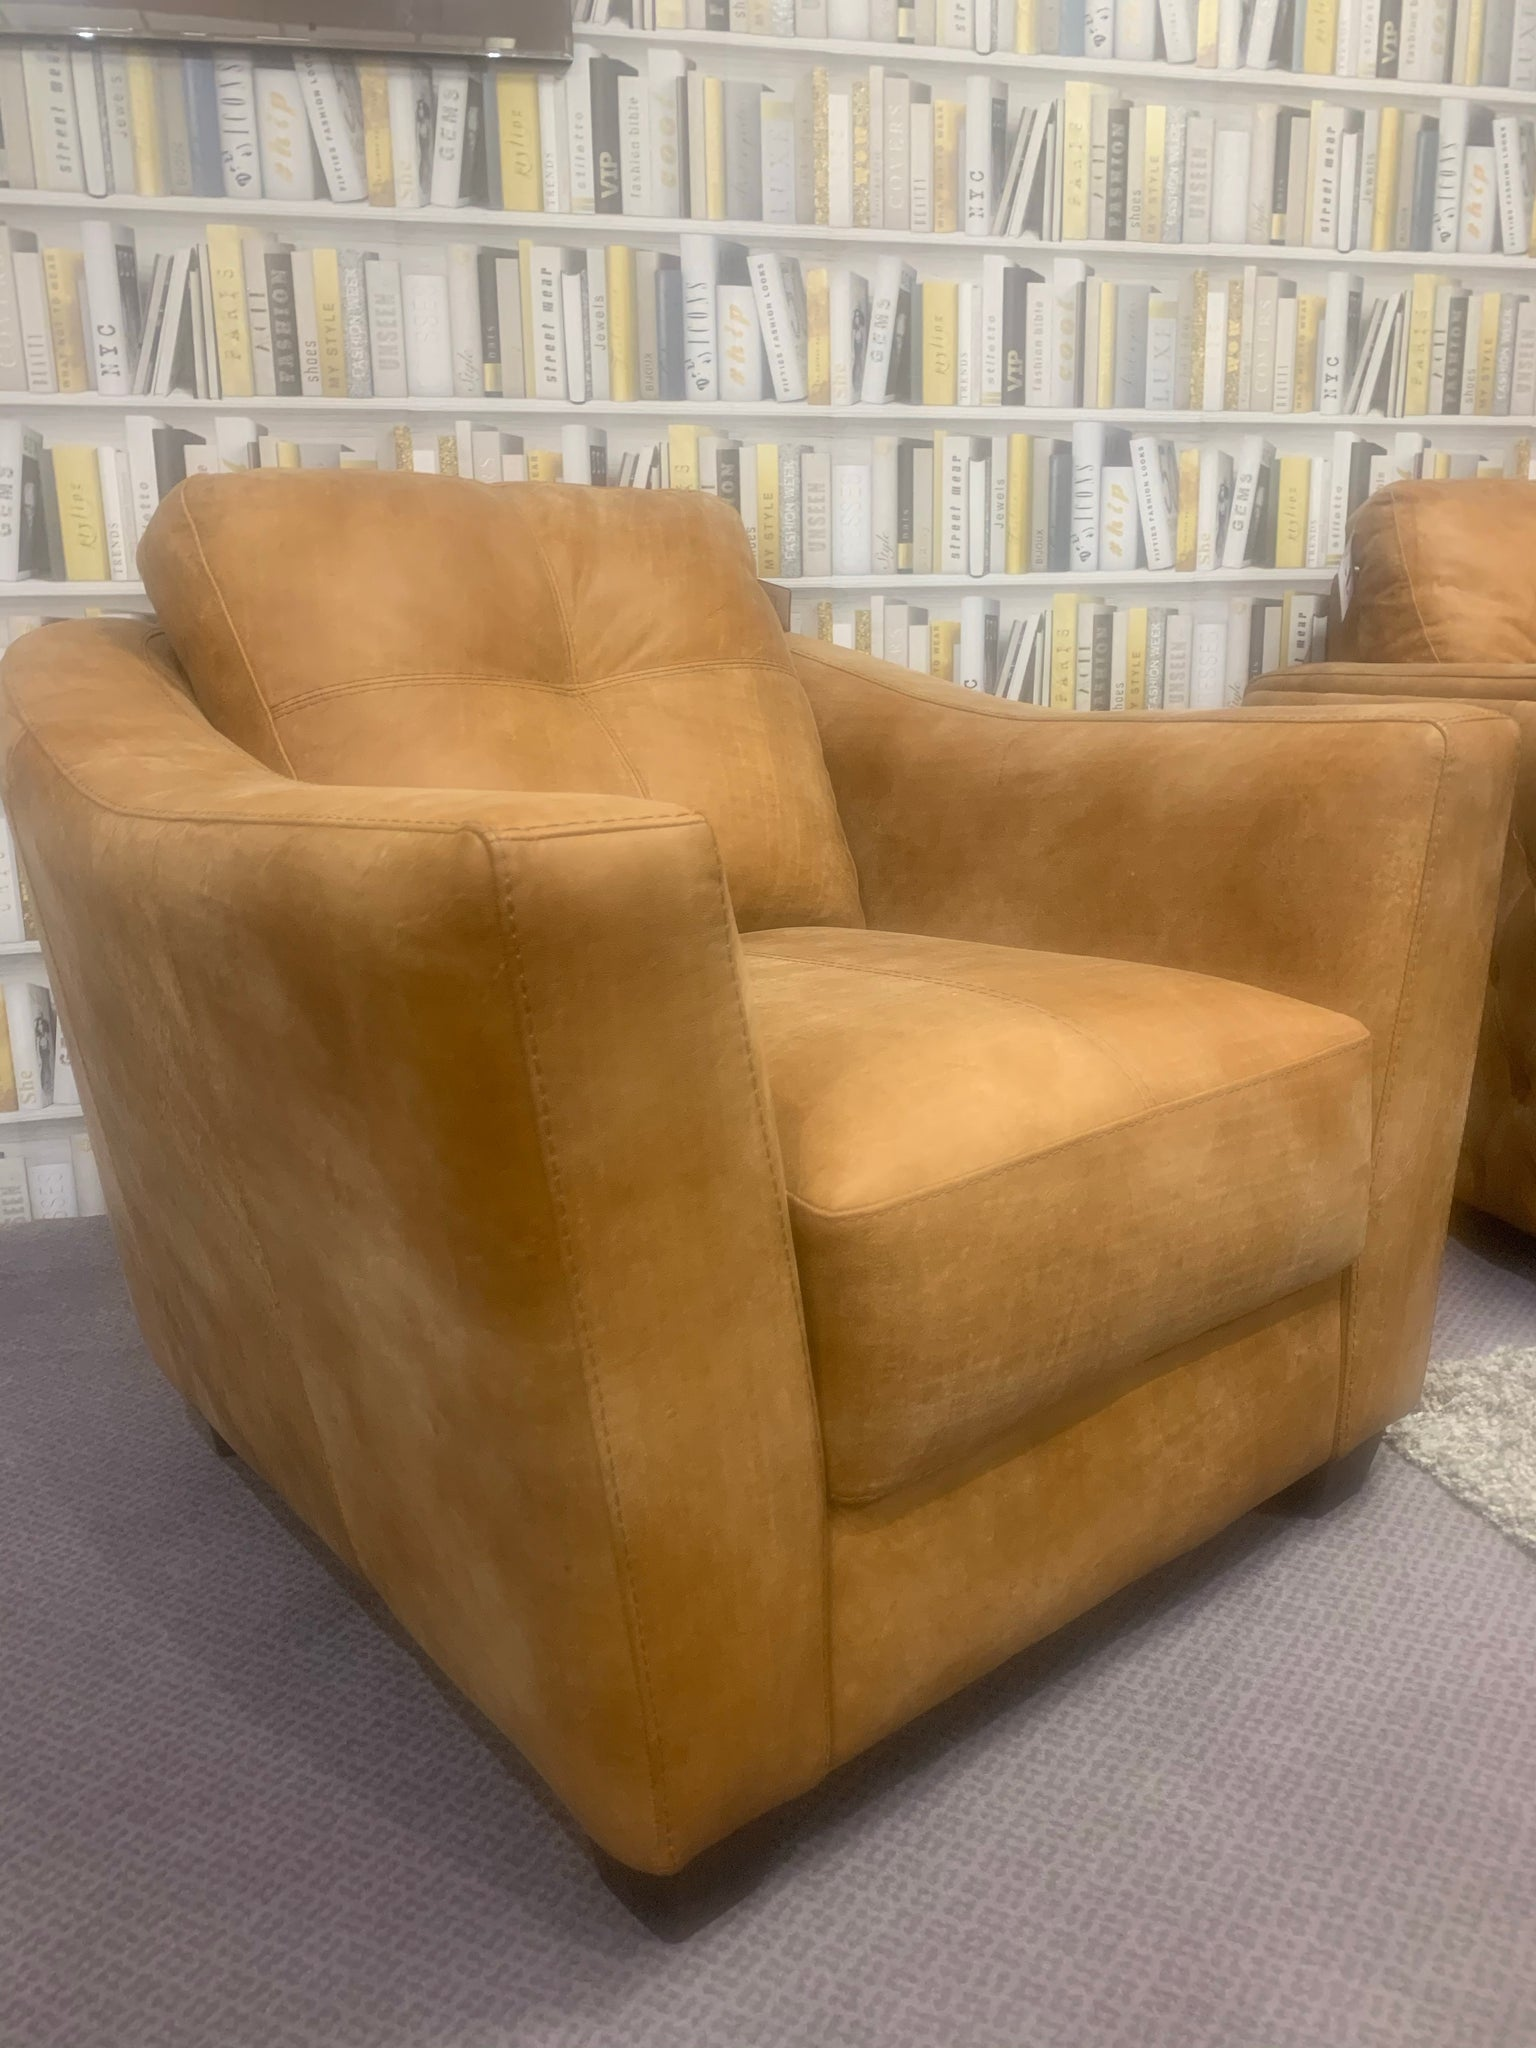 Sample Sale - Italian Ranch Leather Corner Sofa with Buttoned Detailing (Matching Club Chair Available) - Express Delivery